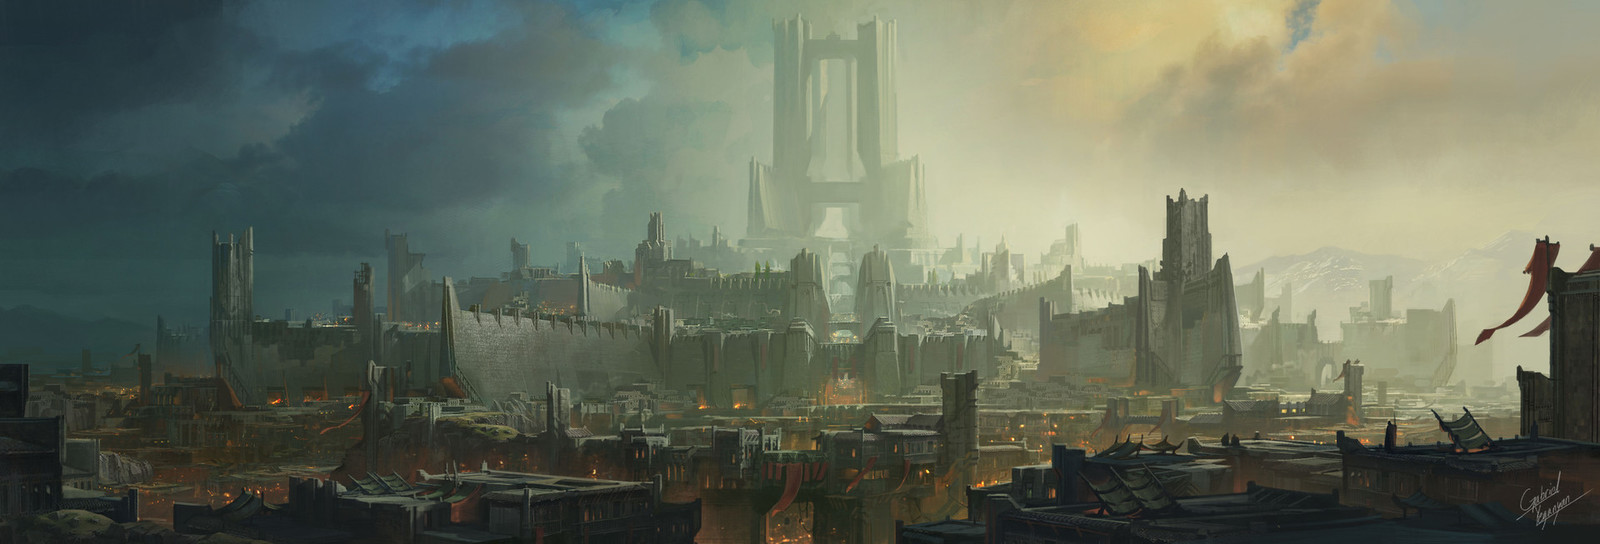 Time was really limited, but opportunistically, Gabriel Yeganyan already painted this background of Noxus and the immortal bastion for the World-Building team. 